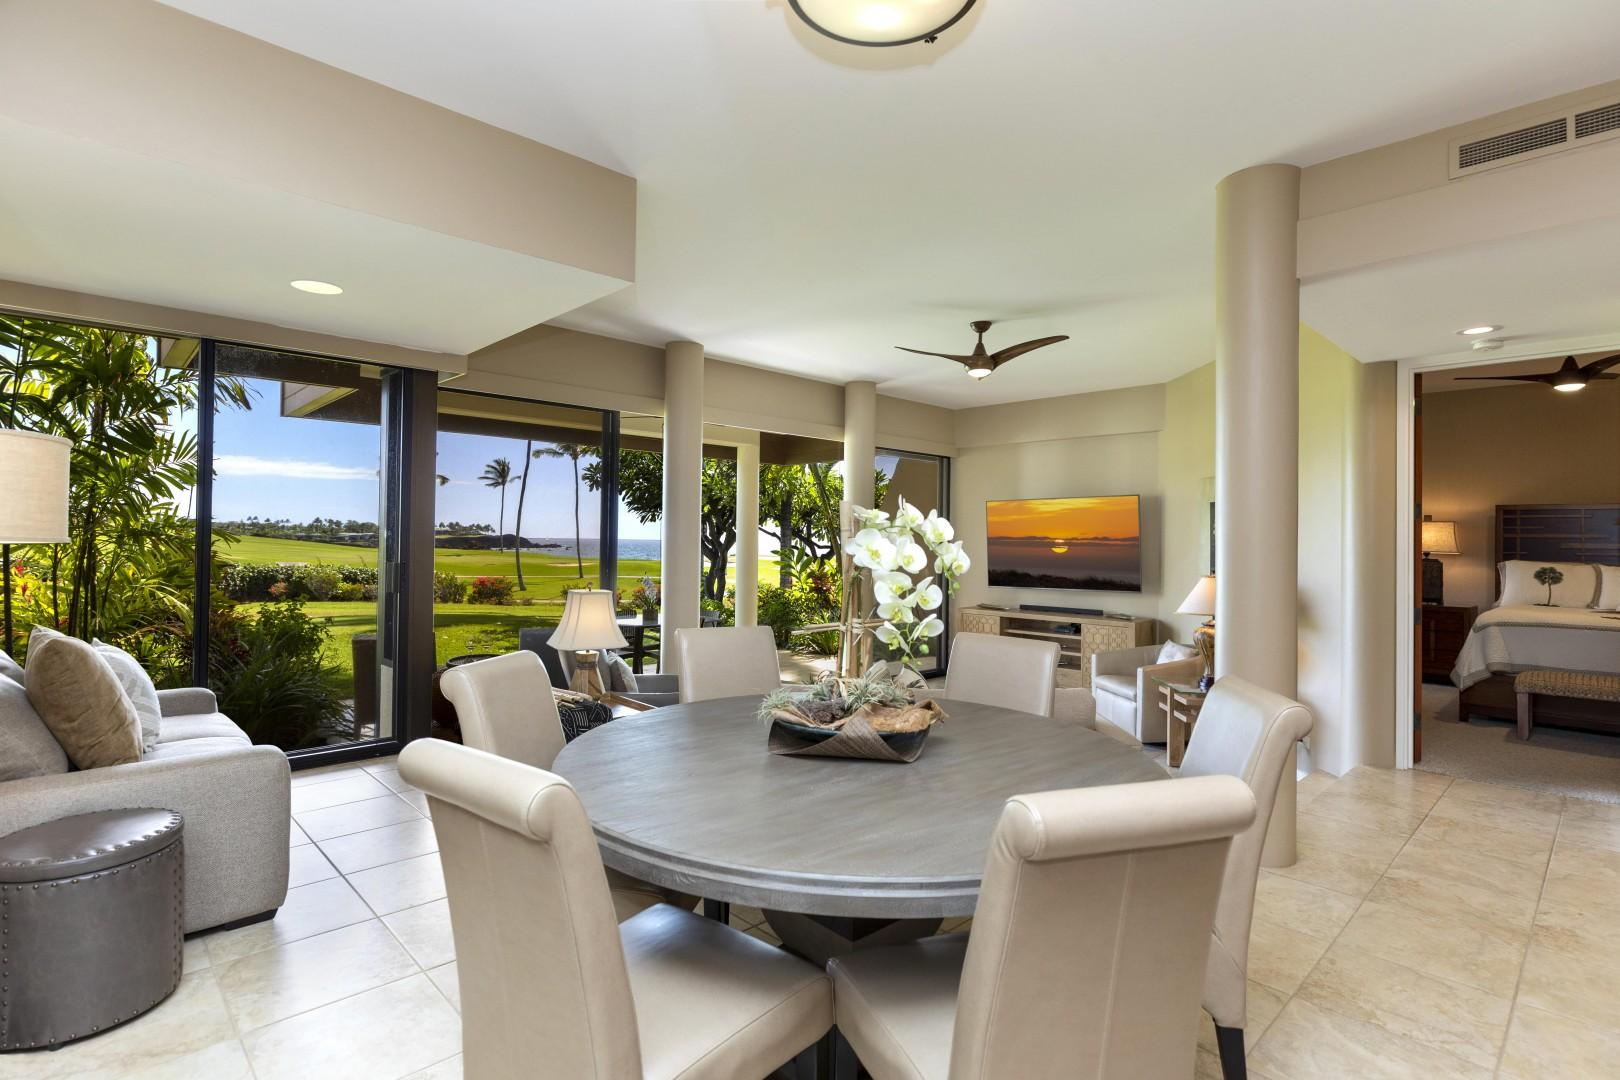 Enjoy a meal indoors while having views and being close to the chef.